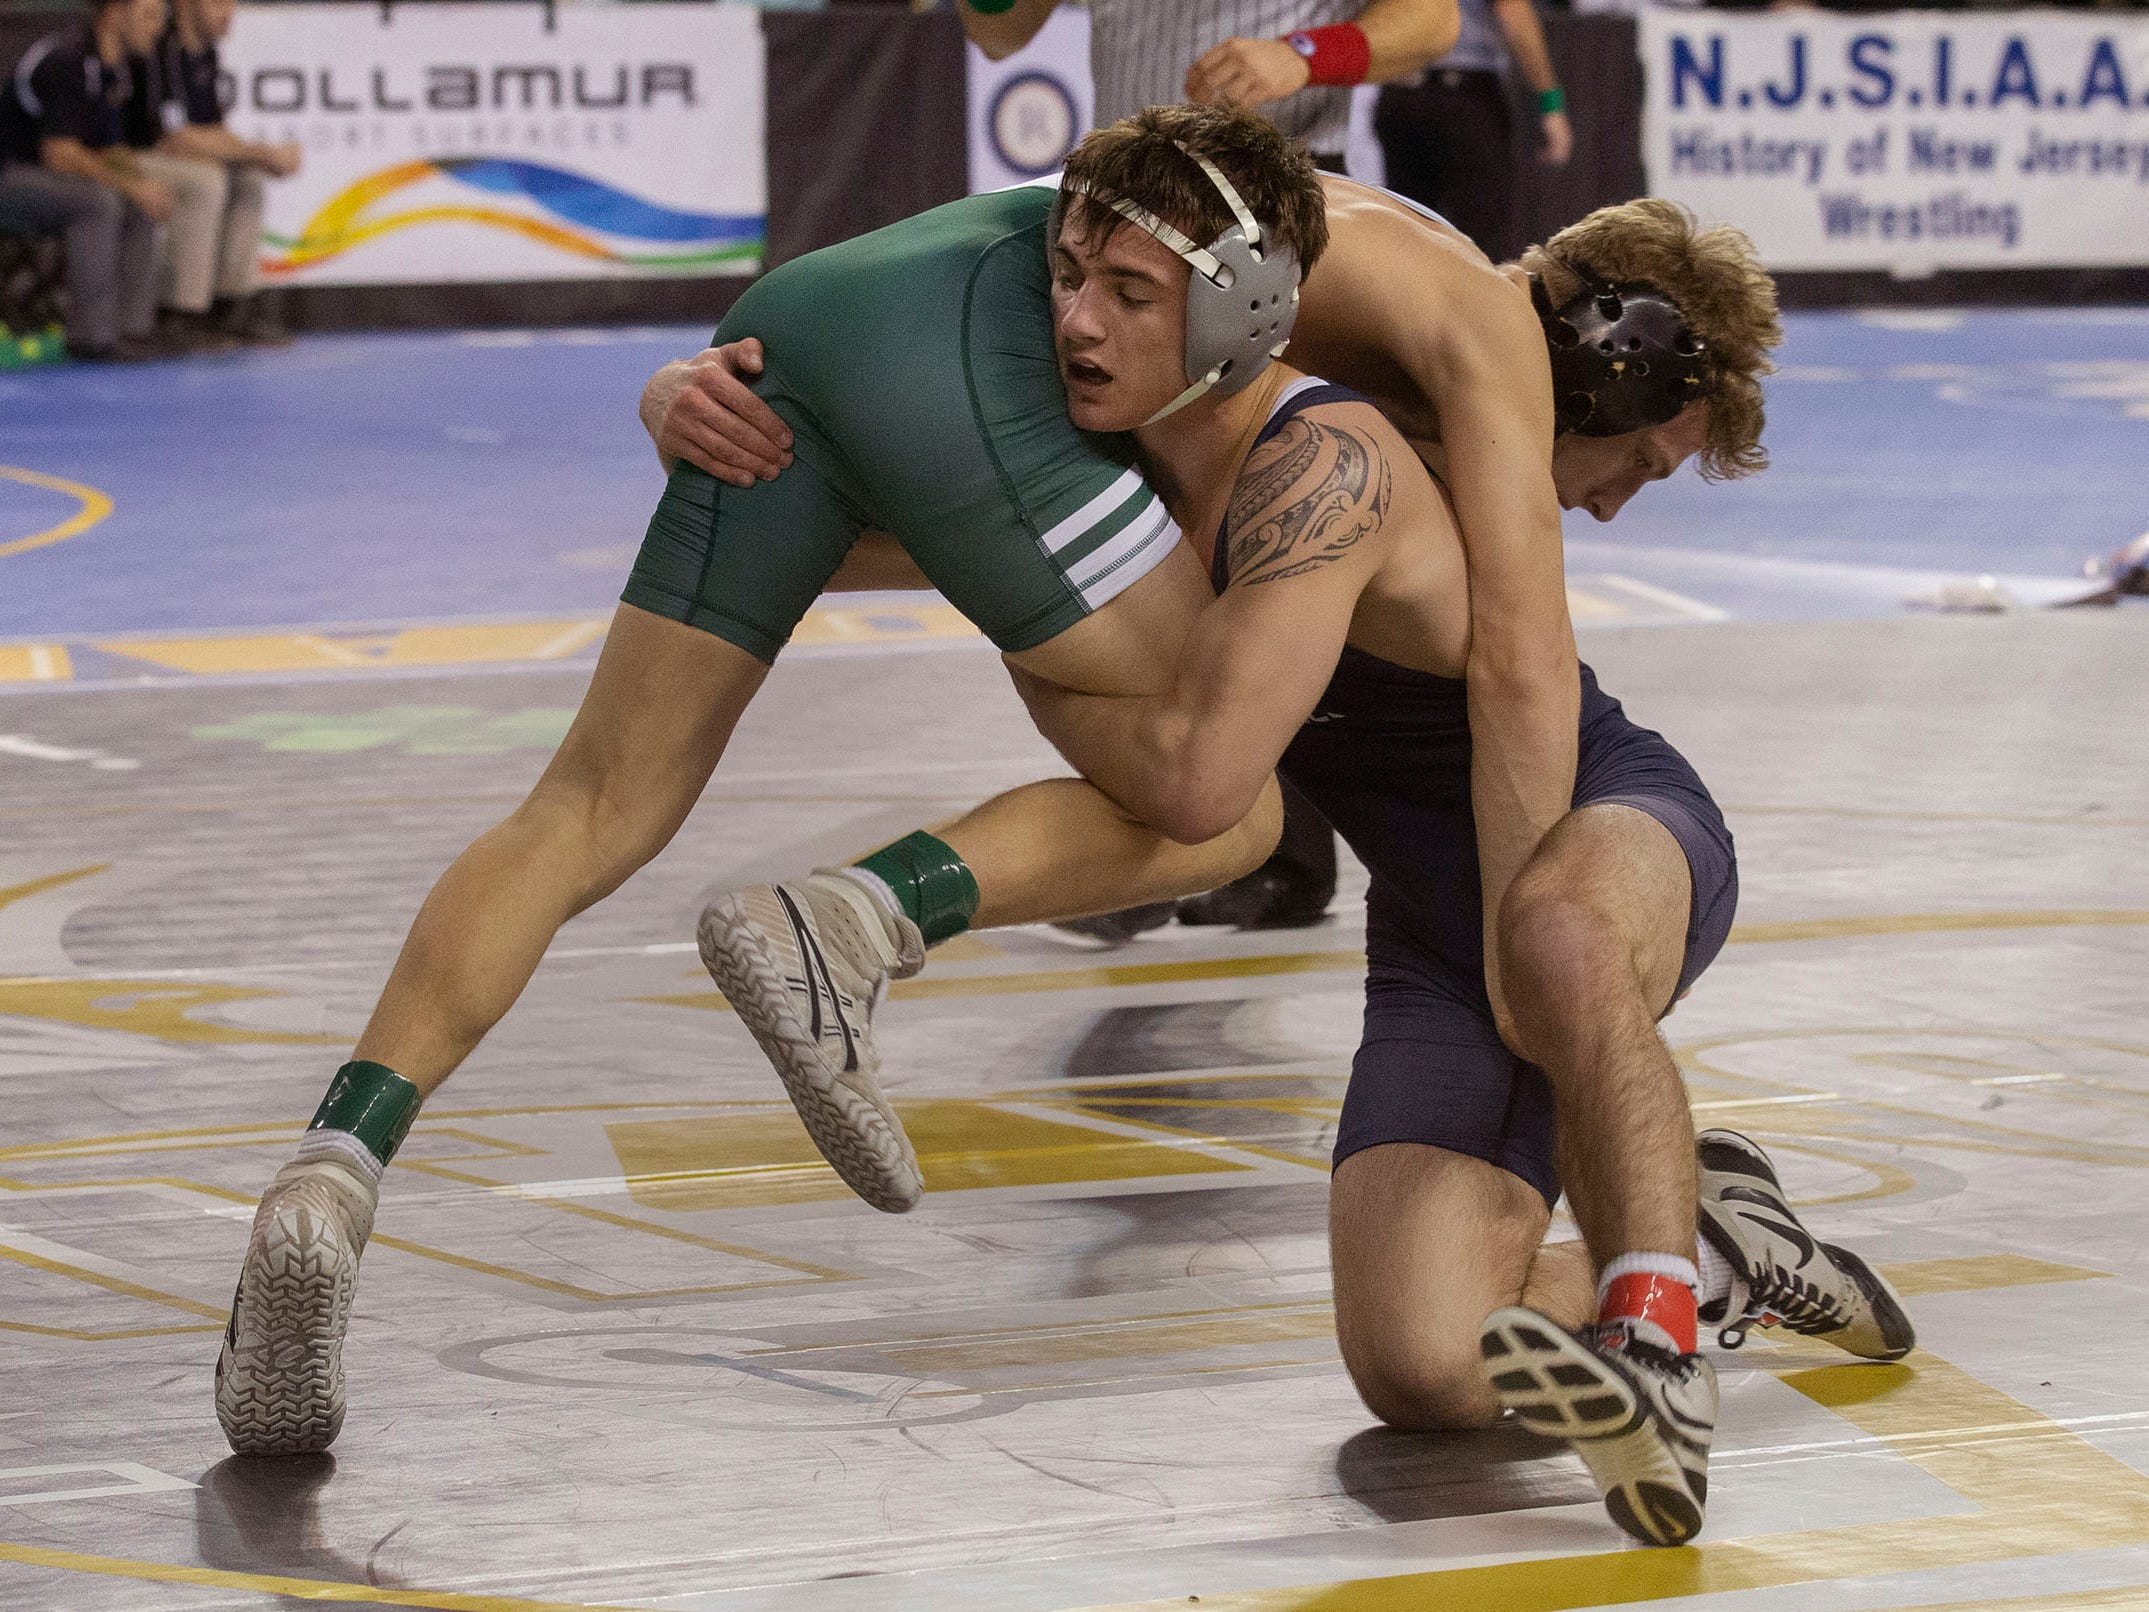 Howell's Darby Diedrich defeated Delbarton's Andrew Troczynski 3-1 in overtime during their 139 lbs bout. NJSIAA State Wrestling opening rounds in Atlantic City, Thursday February 28, 2019